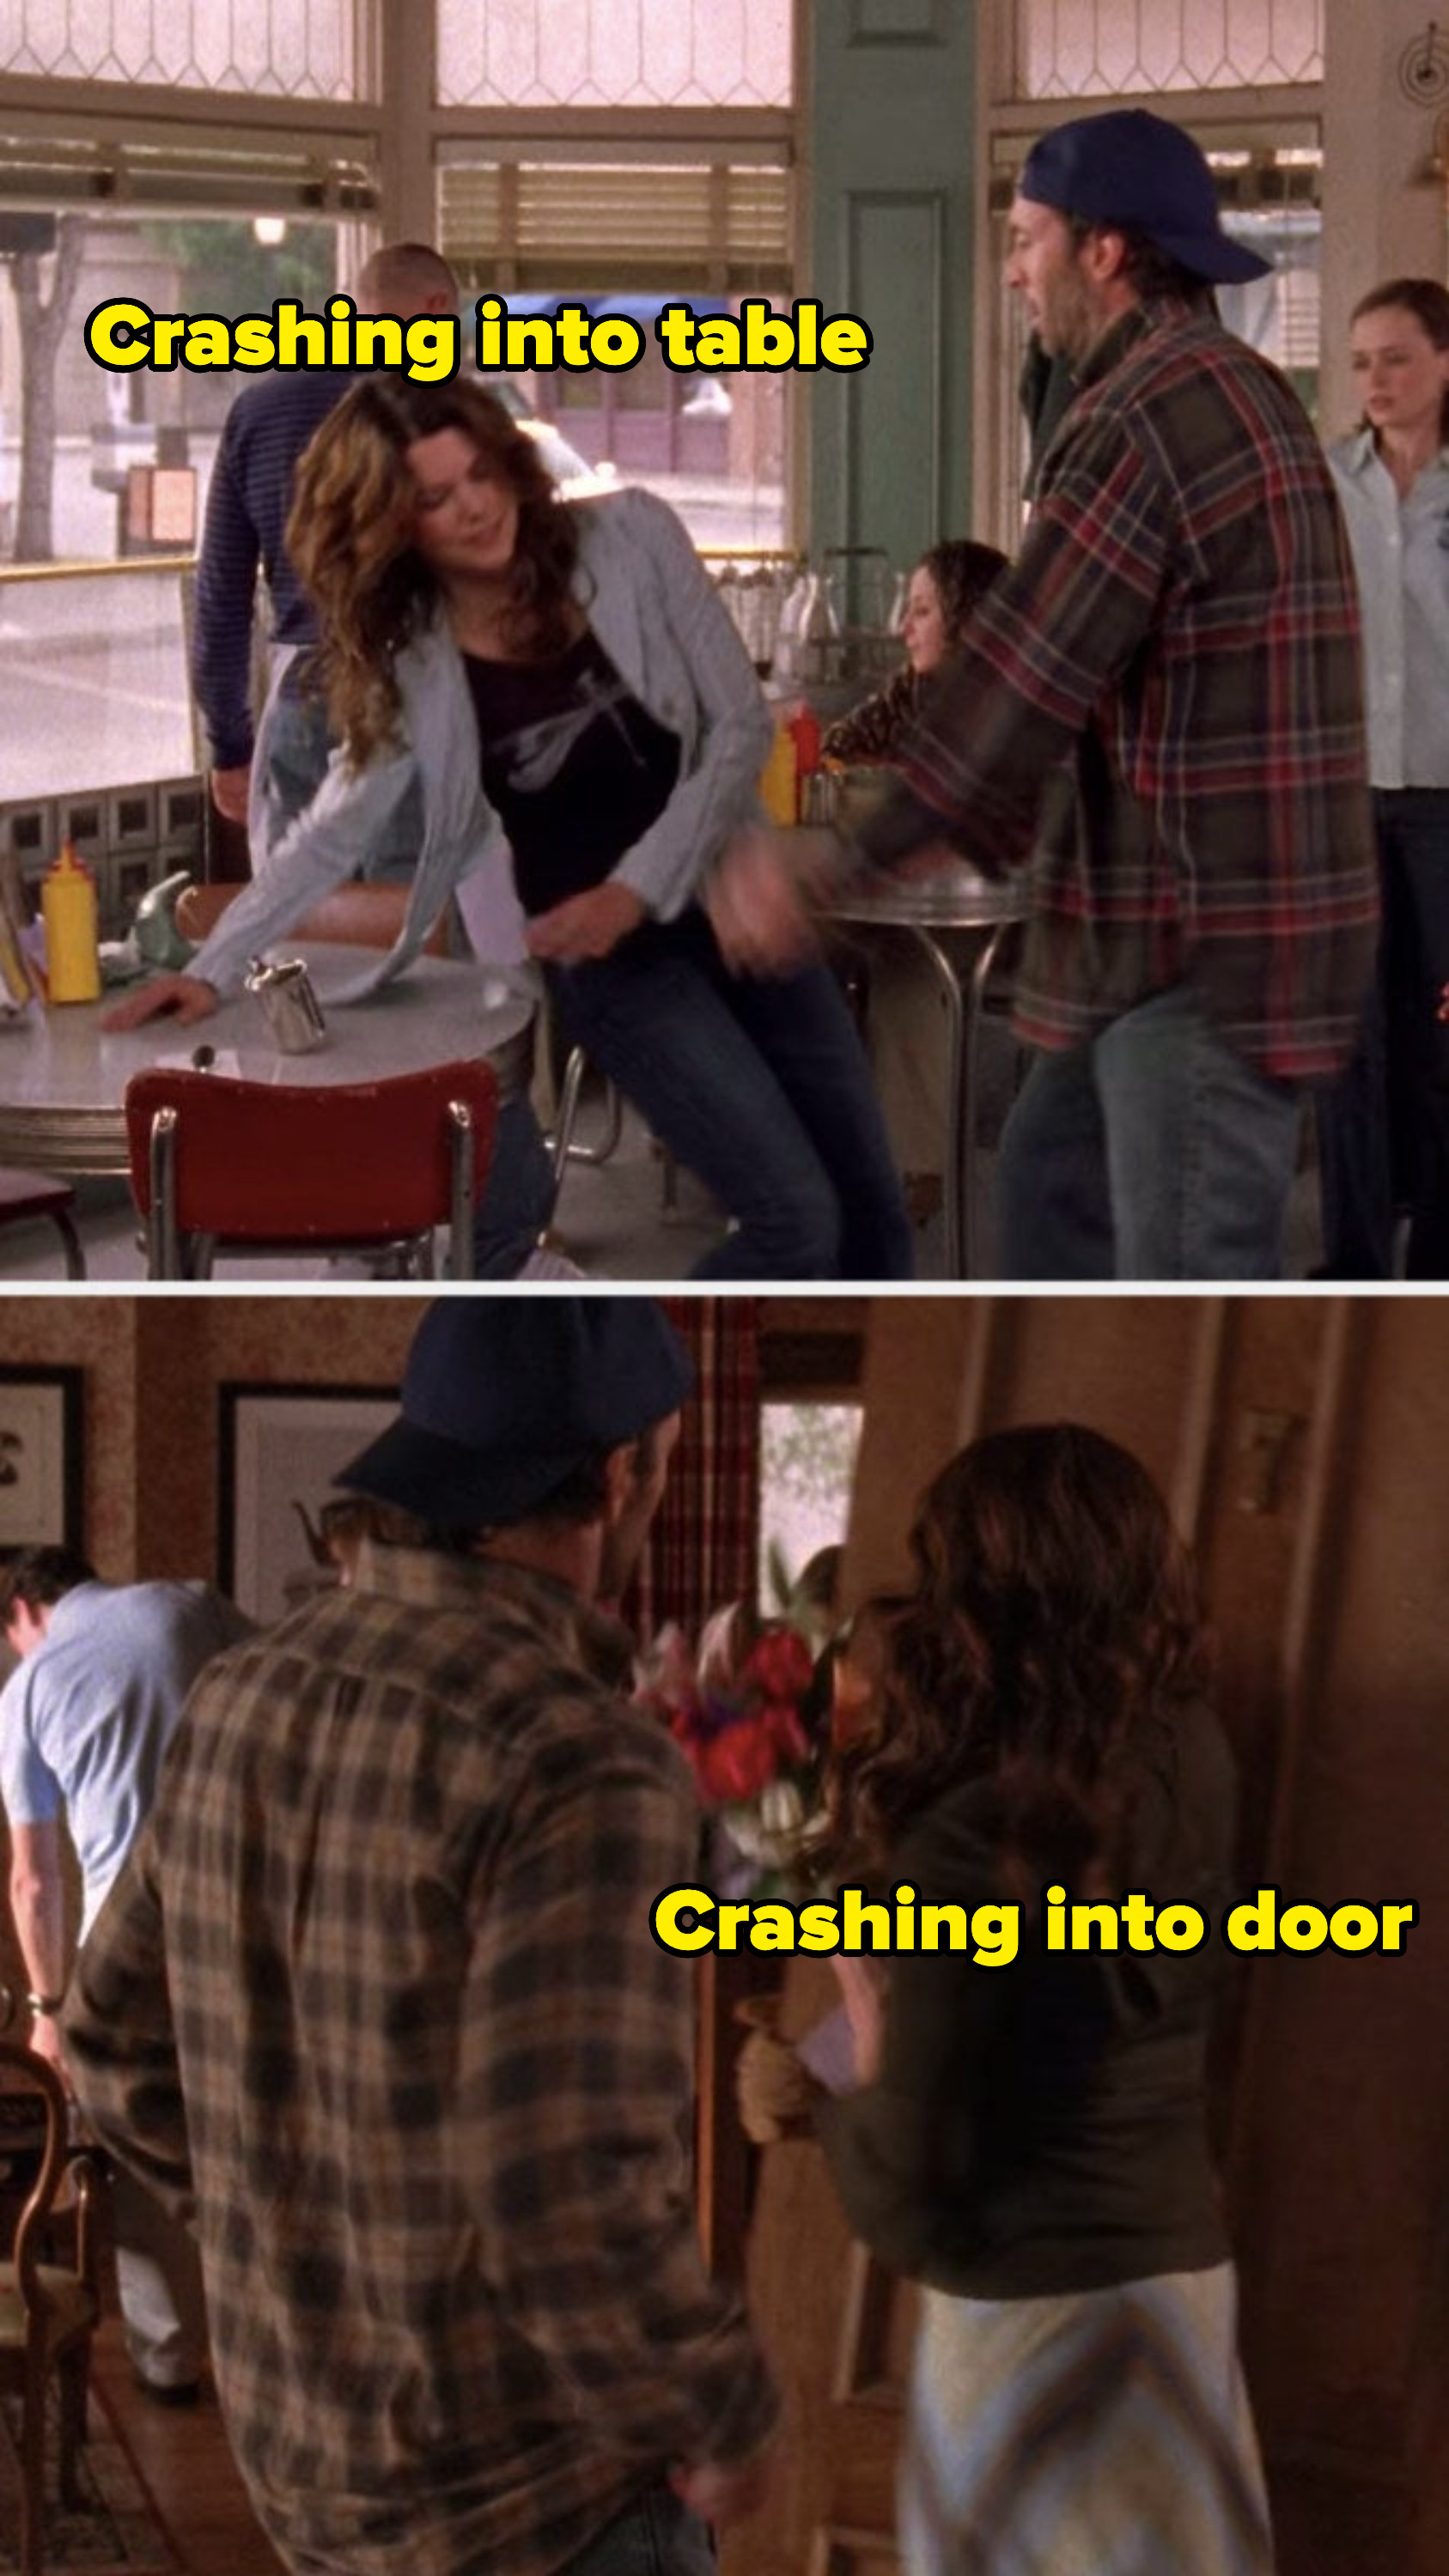 Lorelai crashing into a table in Luke's Diner and crashing into a door in the Dragonfly